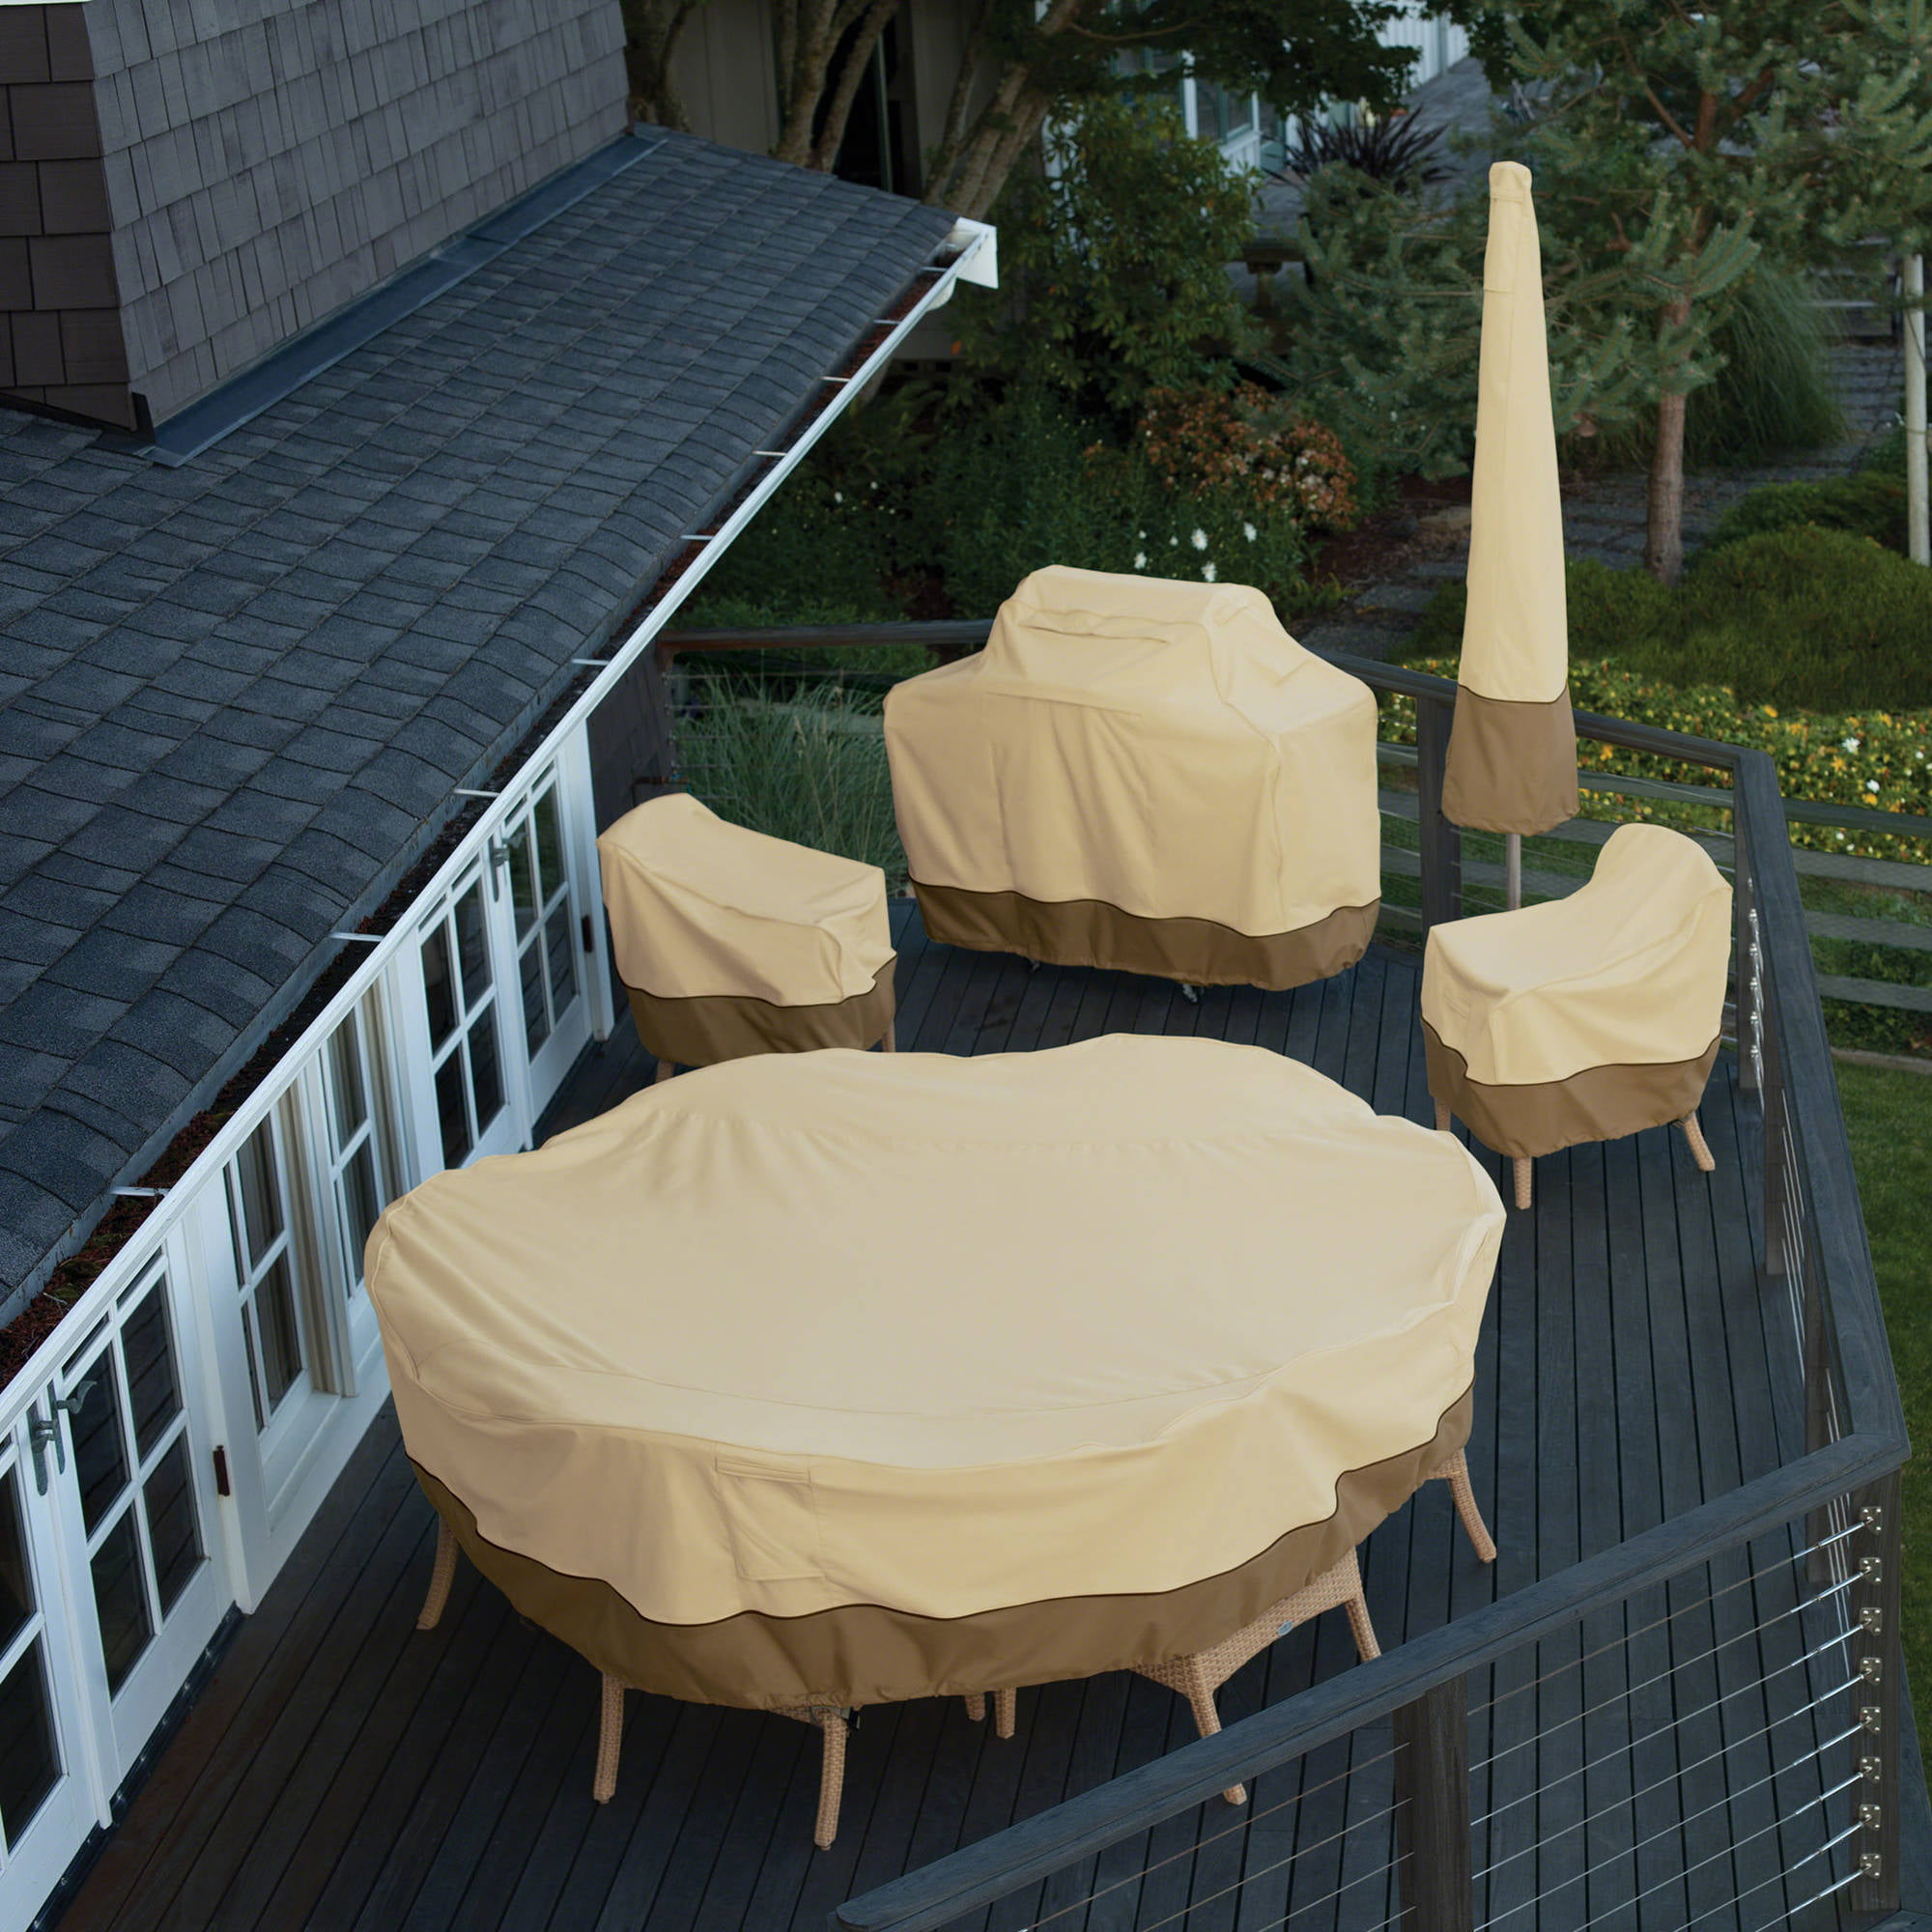 Classic Accessories Veranda Round Patio Table U0026 Chair Set Cover   Durable  And Water Resistant Outdoor Furniture Cover, Medium (78922)   Walmart.com